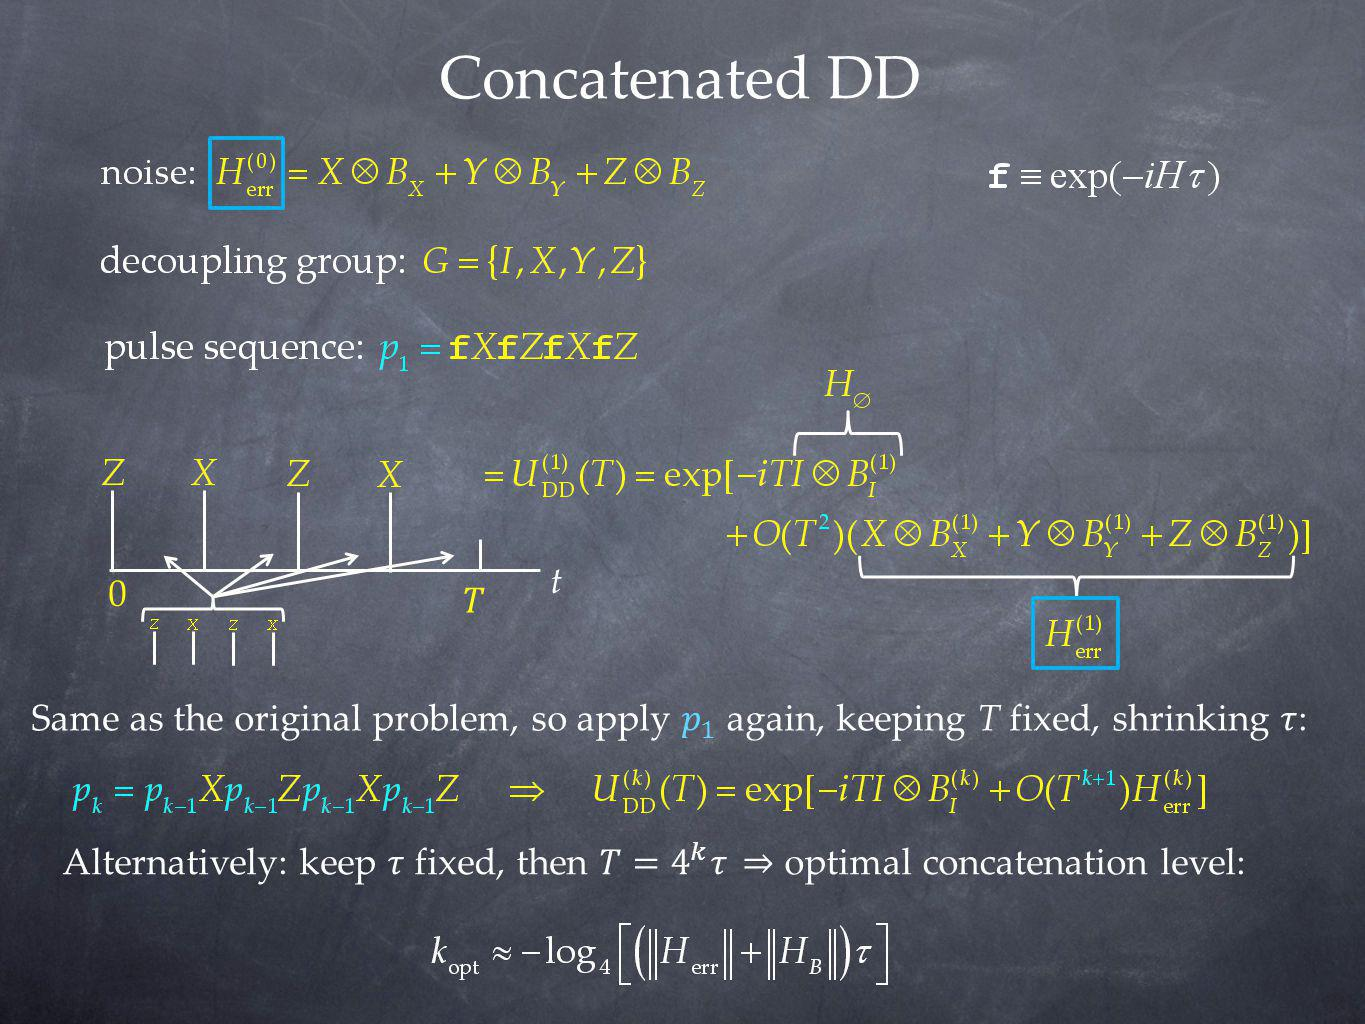 Concatenated DD t. 𝑇. Same as the original problem, so apply 𝑝 1 again, keeping T fixed, shrinking 𝜏: